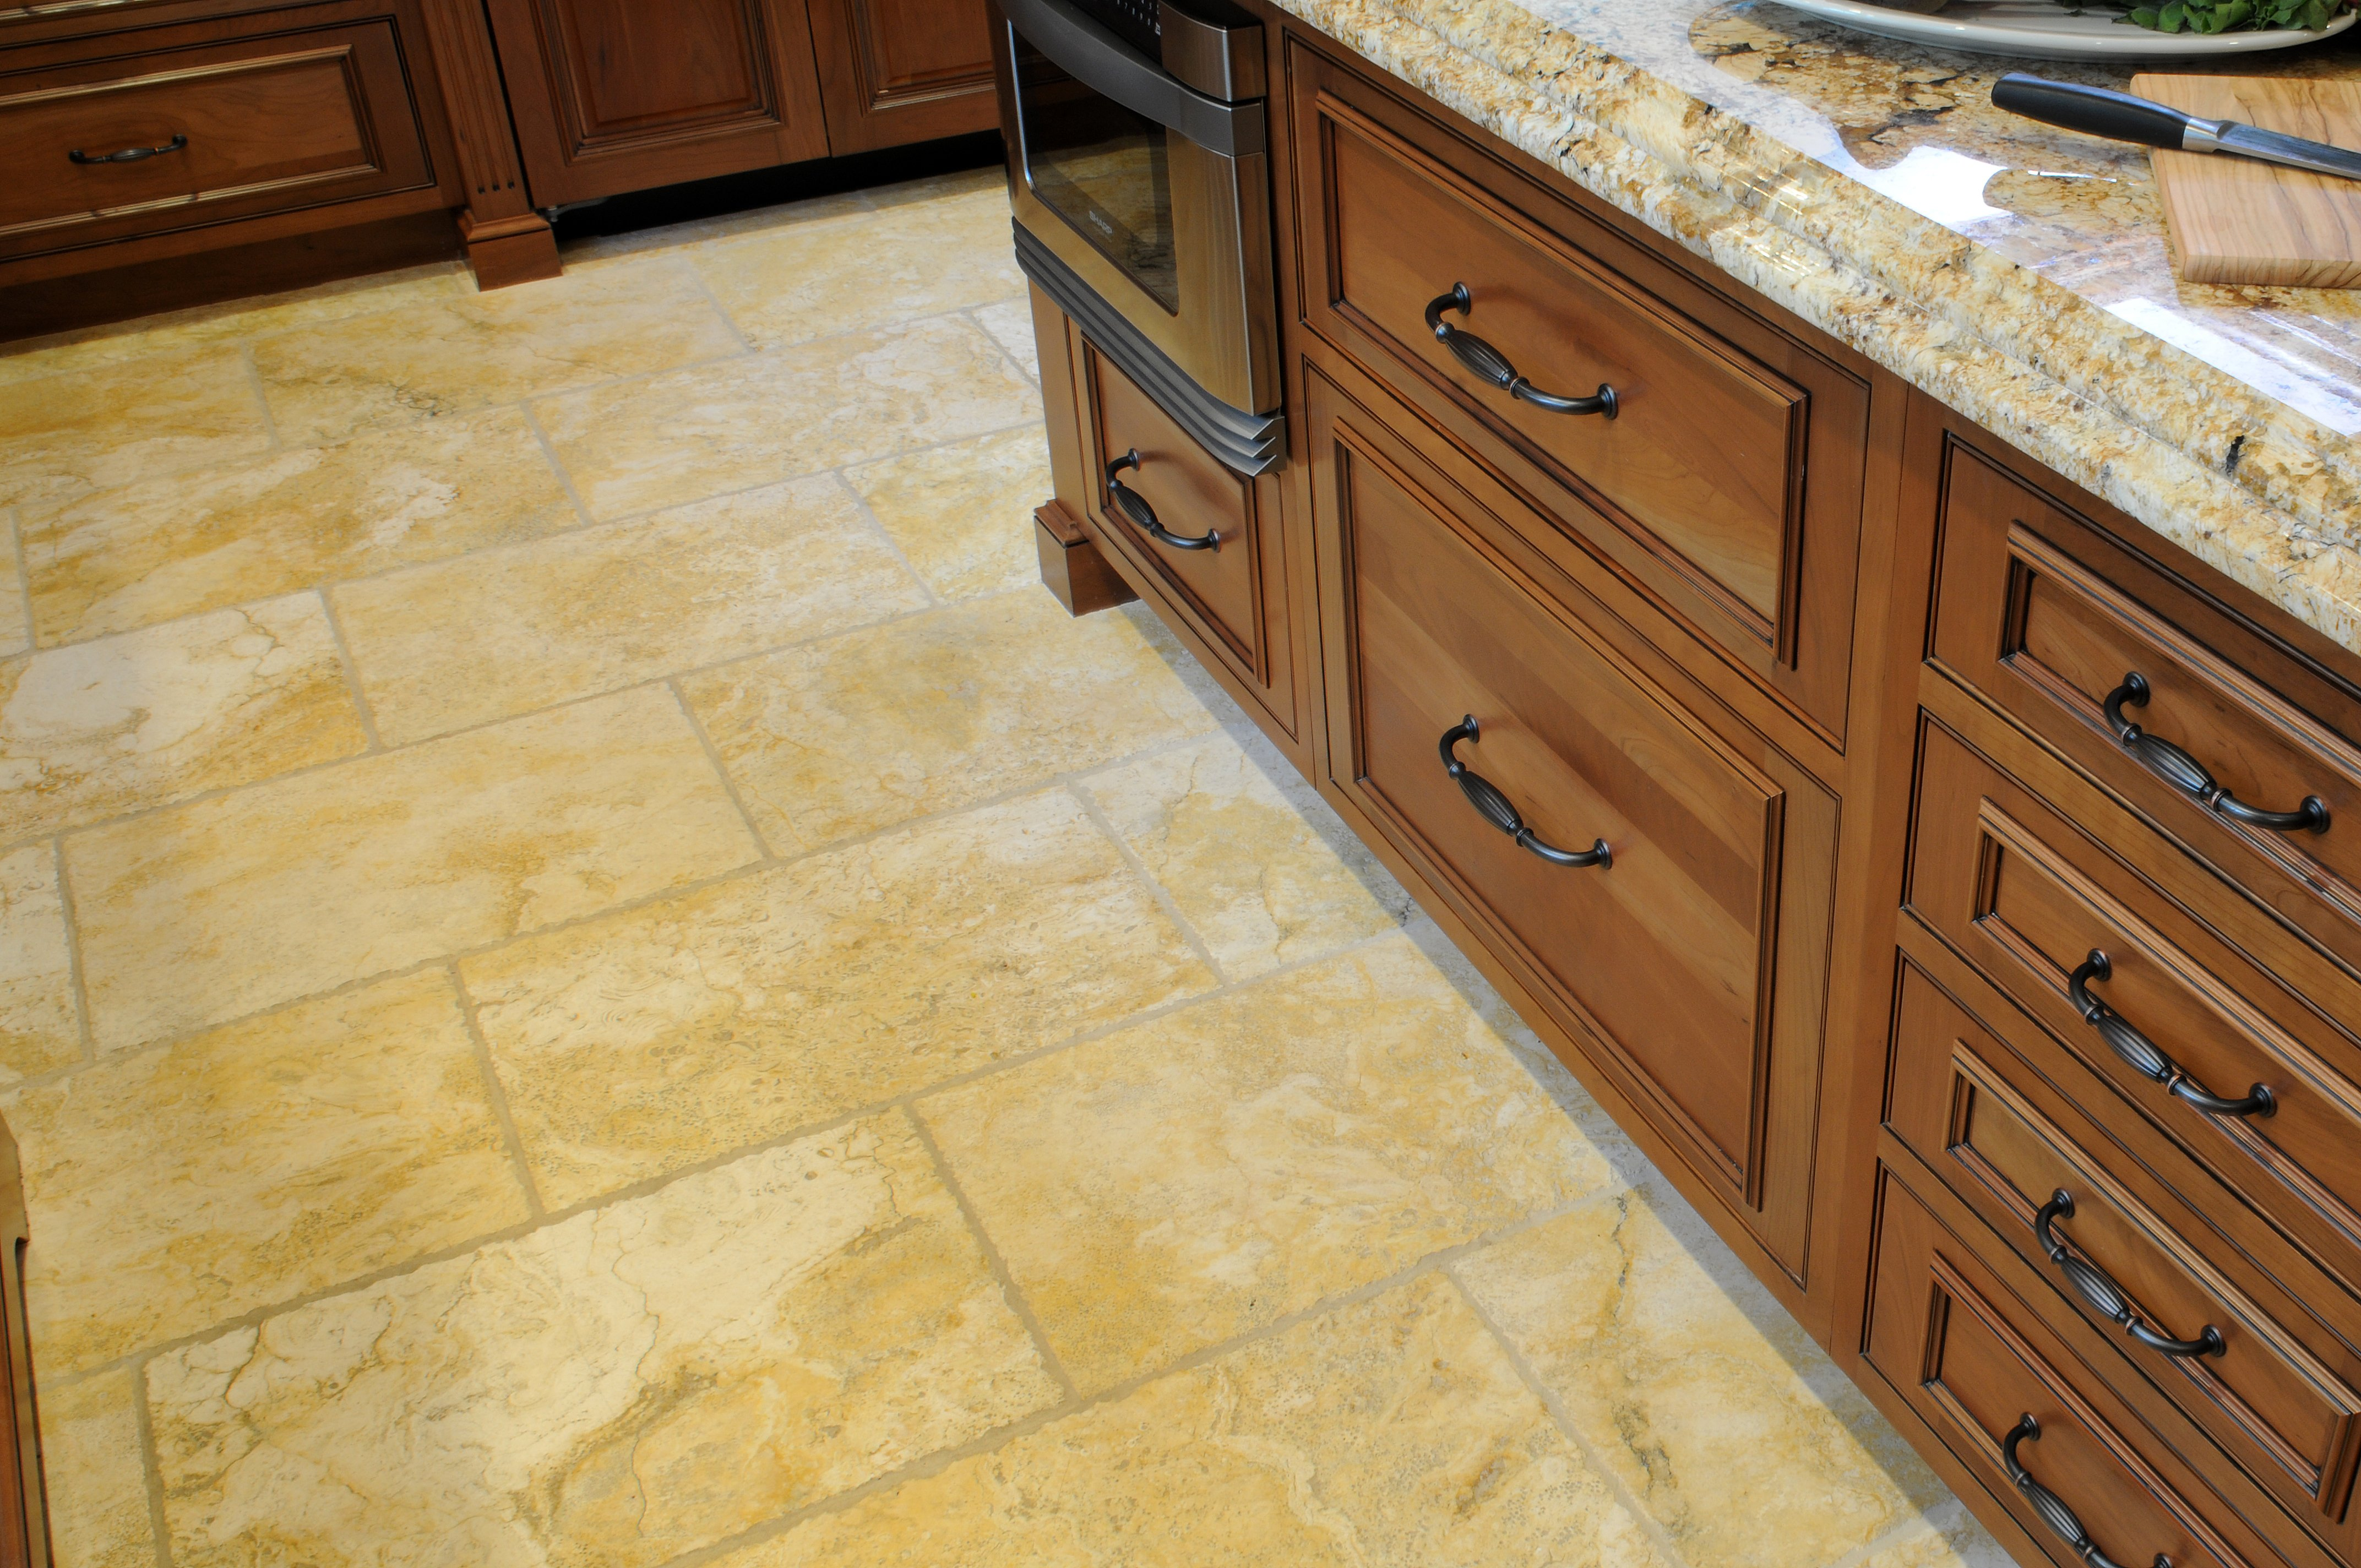 Kitchen Stone Flooring Ratings, Reviews